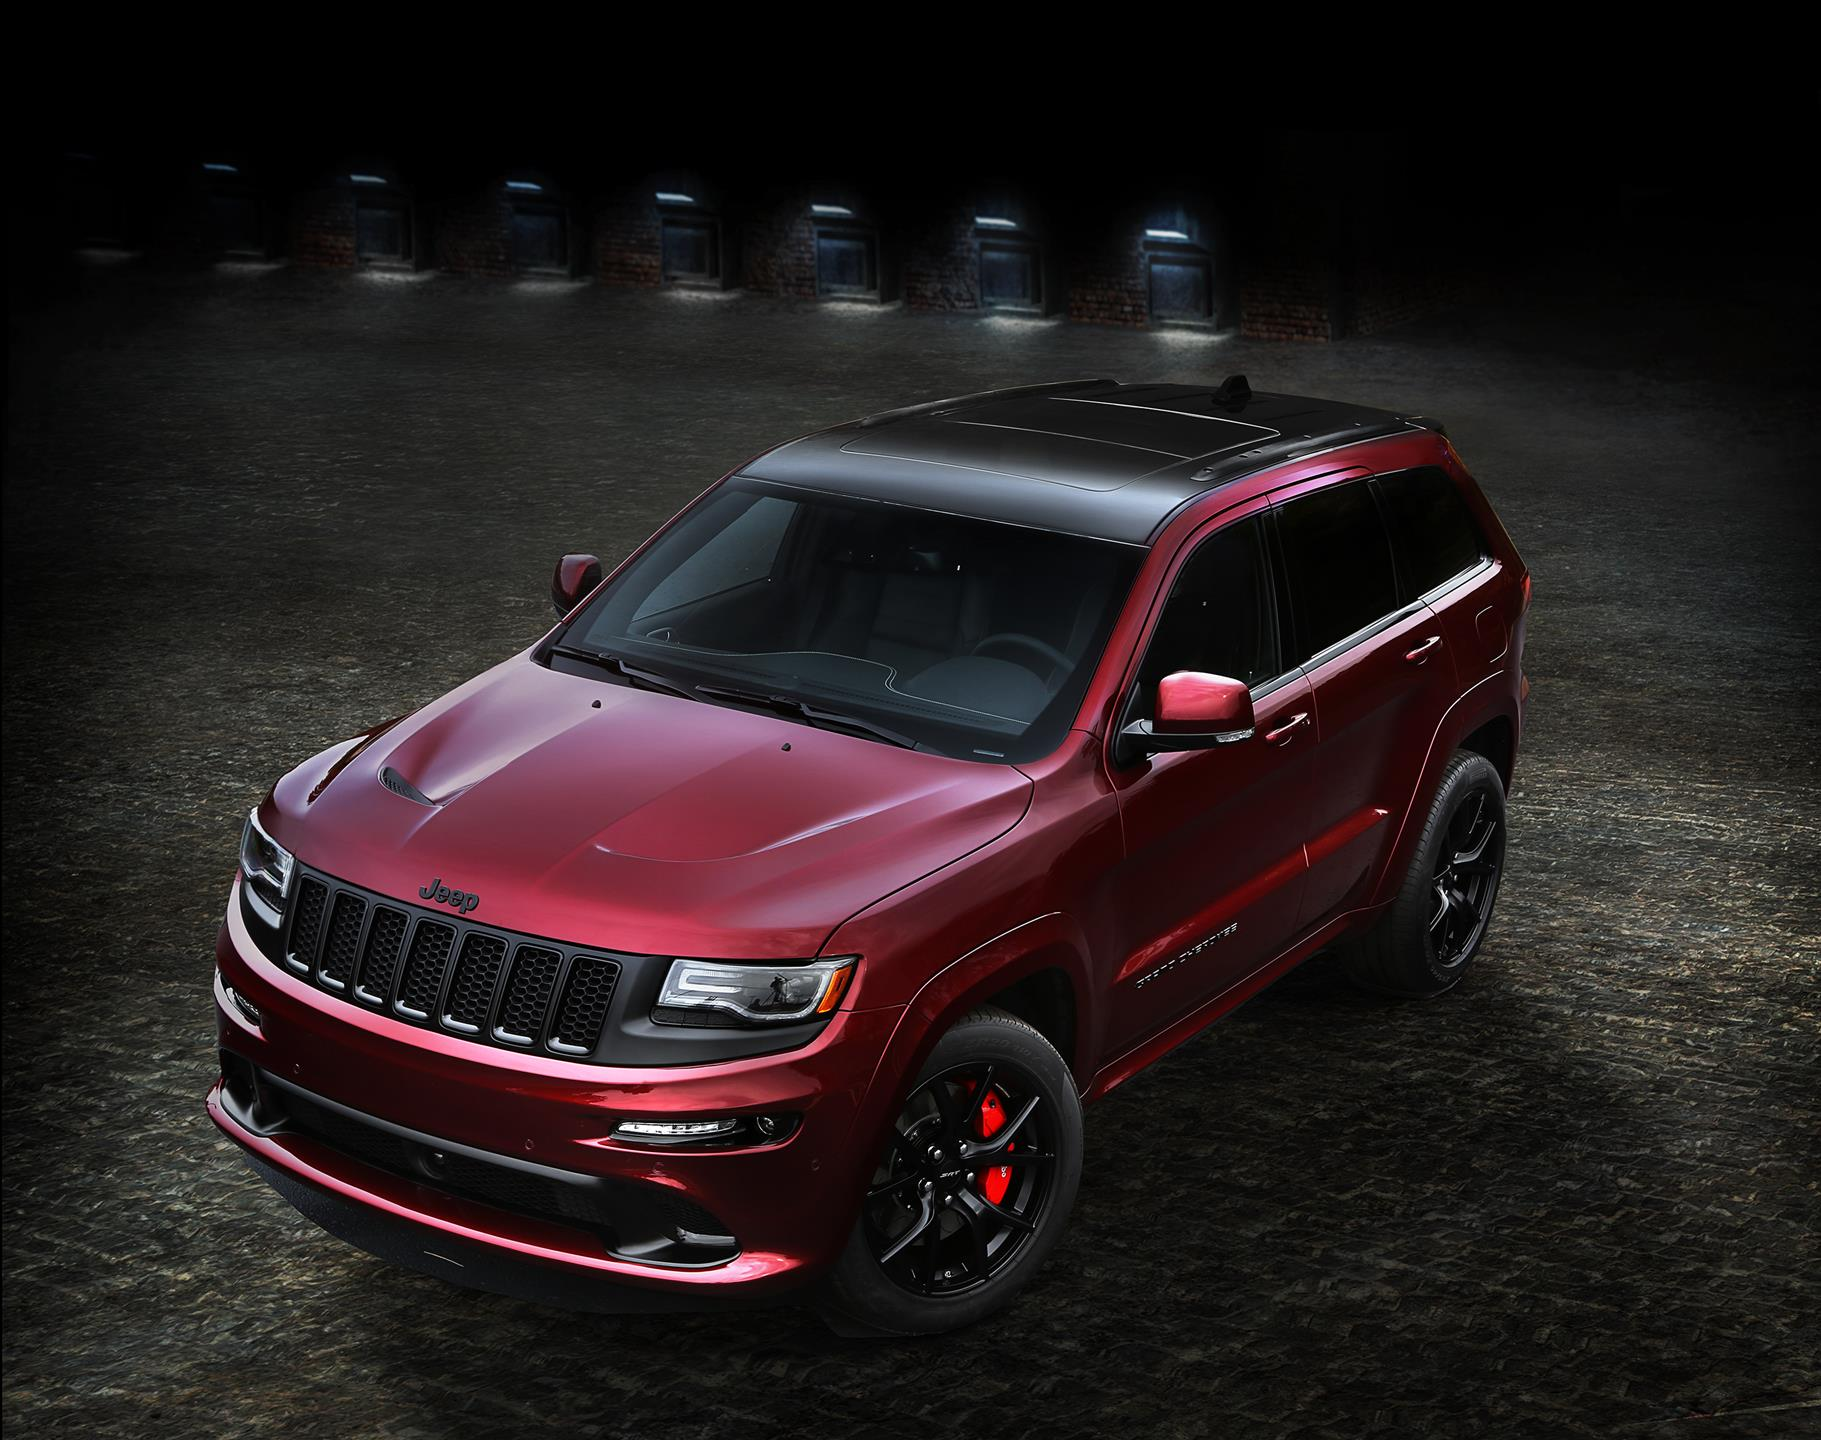 2015 Jeep Grand Cherokee >> 2015 Jeep Grand Cherokee SRT Night News and Information - conceptcarz.com